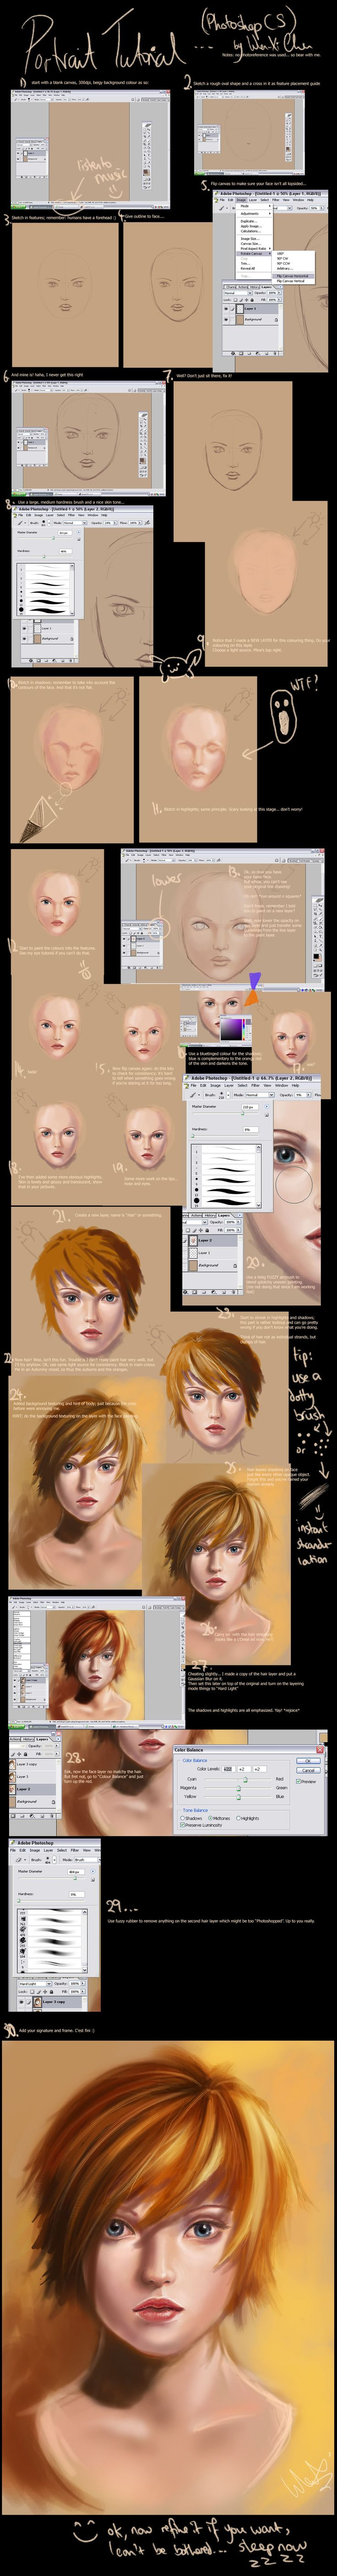 Digital Painting, color theory and other tutorials & Concept Art with Photoshop